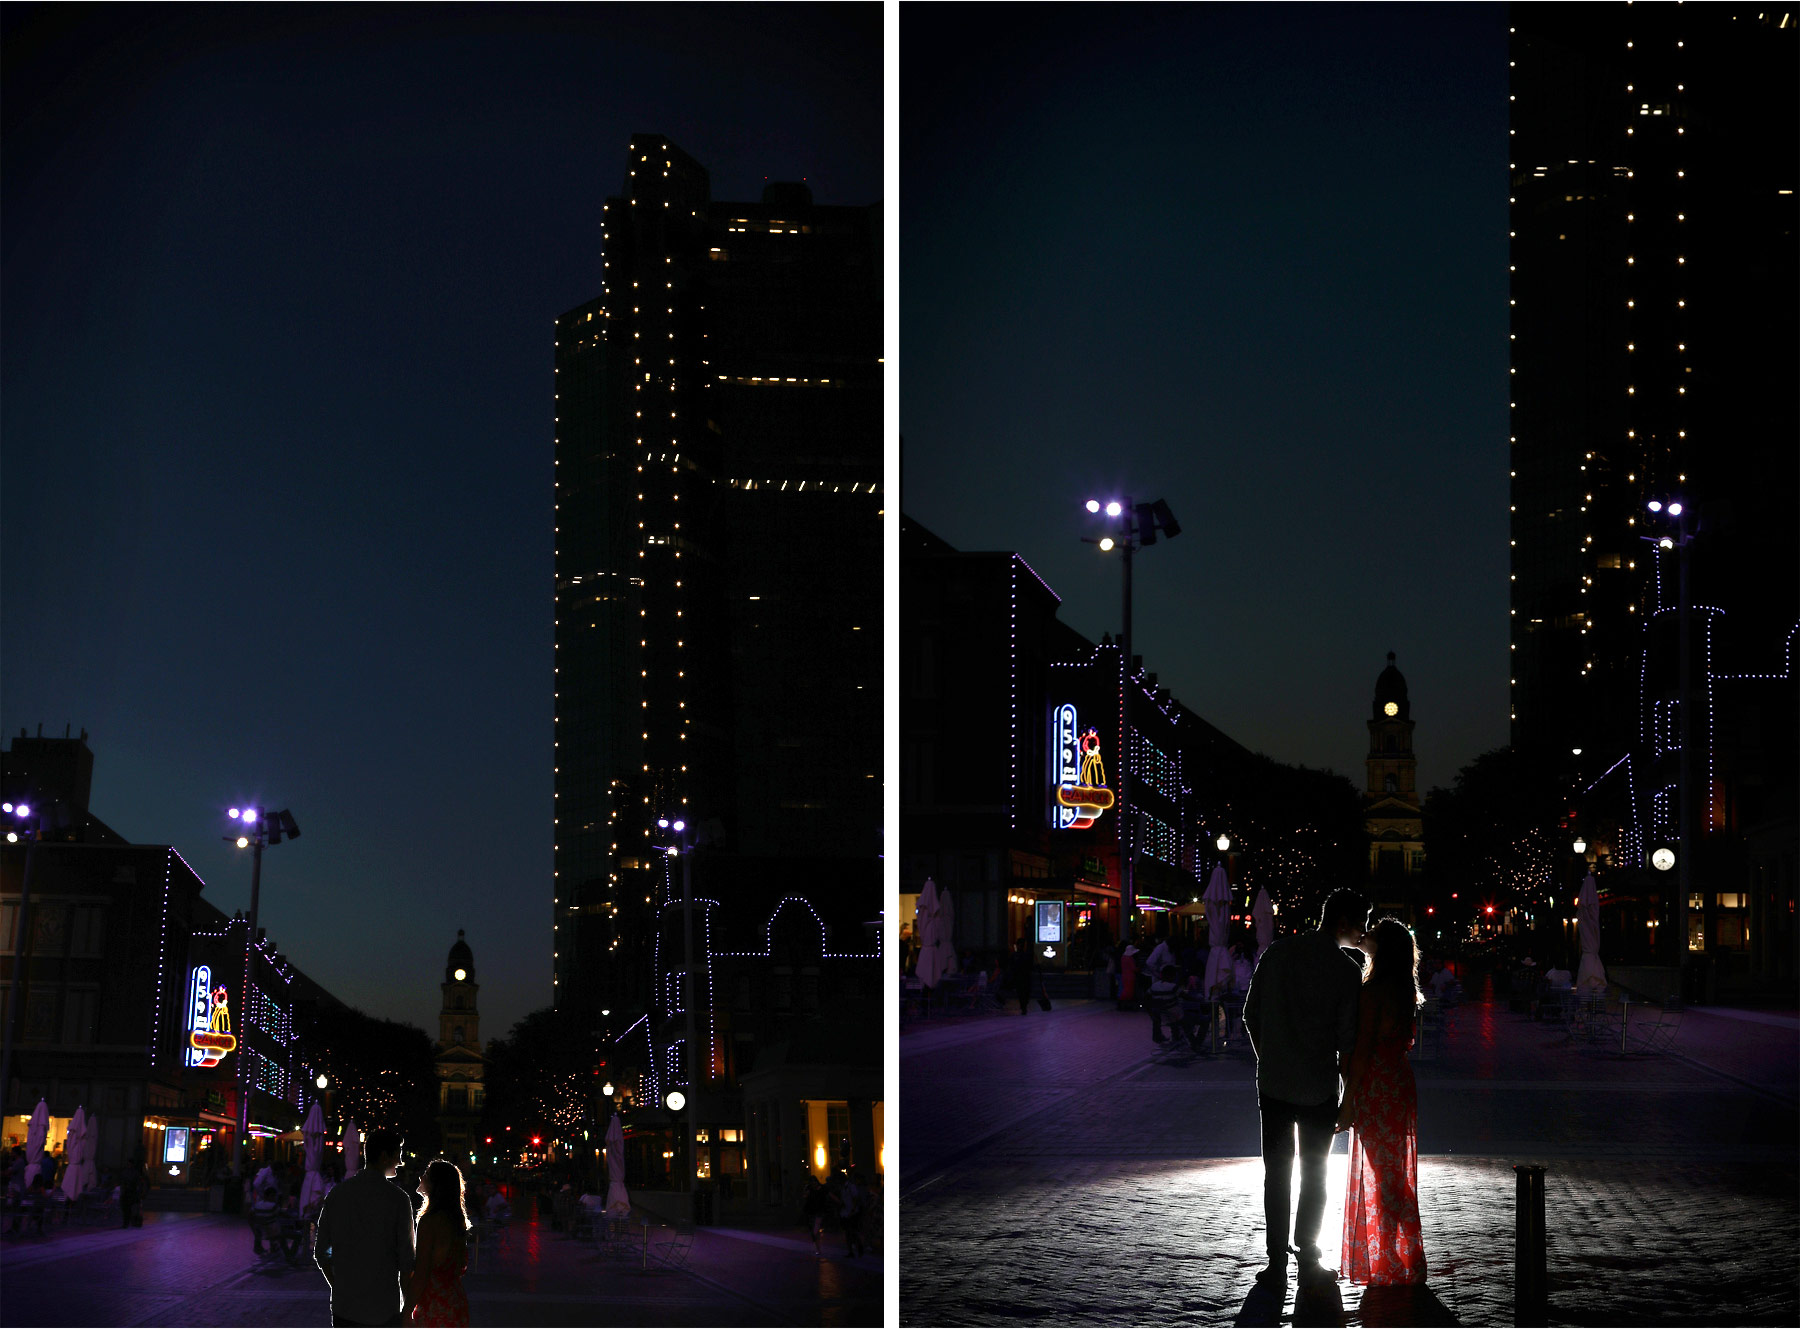 14-Fly-to-Me-Destination-Engagement-Session-Vick-Photography-Fort-Worth-Texas-Couple-Night-Skyline-City-Lights-Downtown-Maggie-and-Matt.jpg